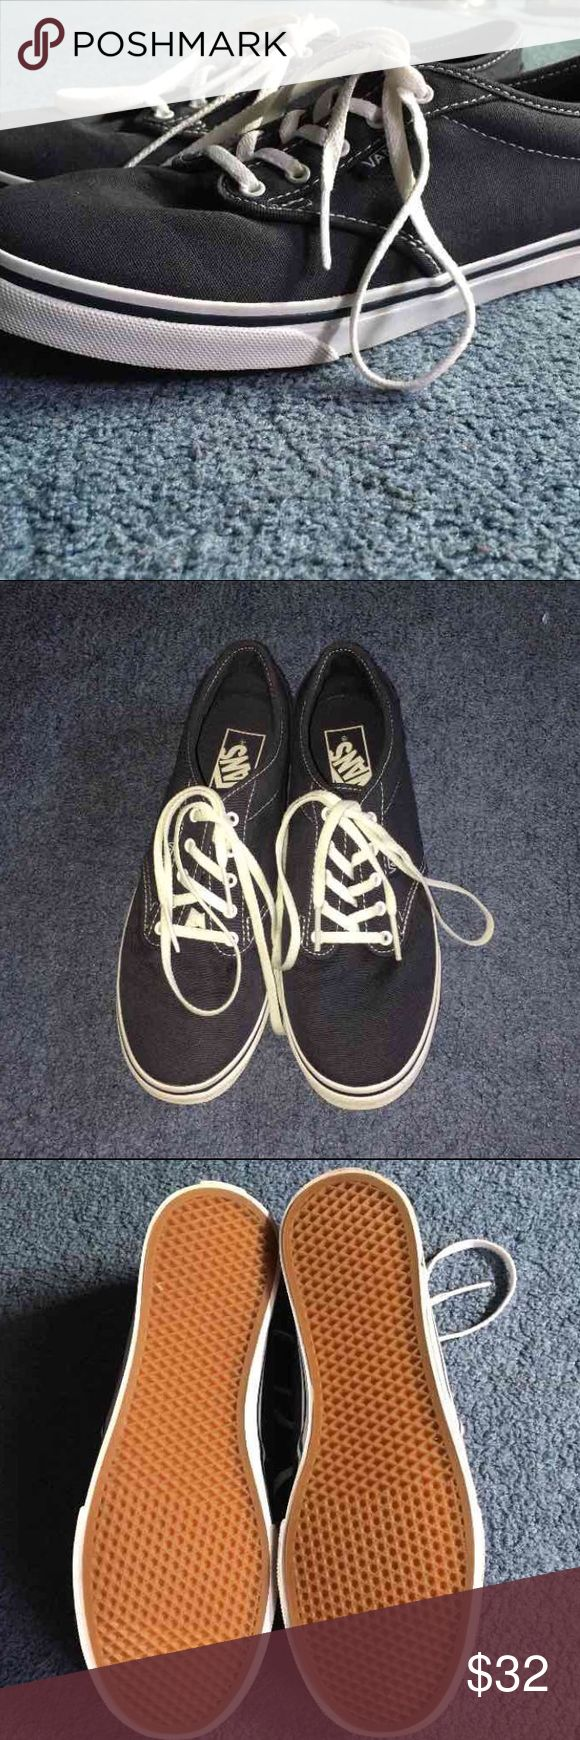 Navy Blue VANS Canvas Sneakers Women's 7.5 Navy Vans Canvas Sneakers, Women's size 7.5. Worn once, the condition is excellent! Little to no wear shown on white siding and bottoms of shoes. Small minor debris on bottom rubber soles, otherwise spotless. No stains on the white laces. Vans Shoes Sneakers